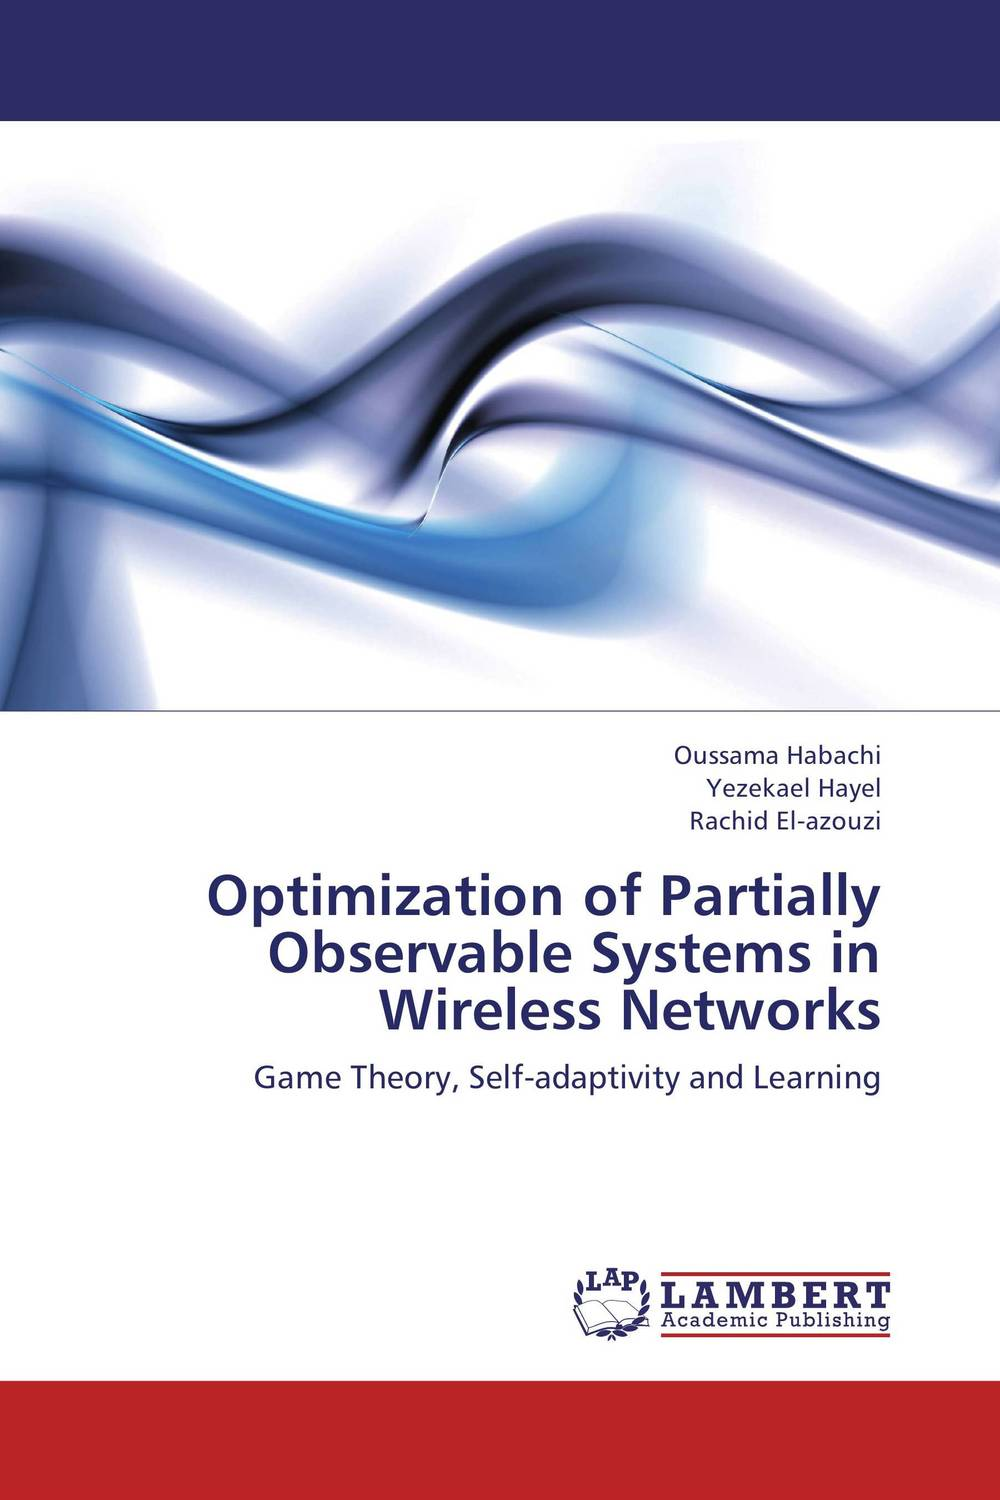 Optimization of Partially Observable Systems in Wireless Networks mohammad usman ali khan optimization of tcp over wireless networks